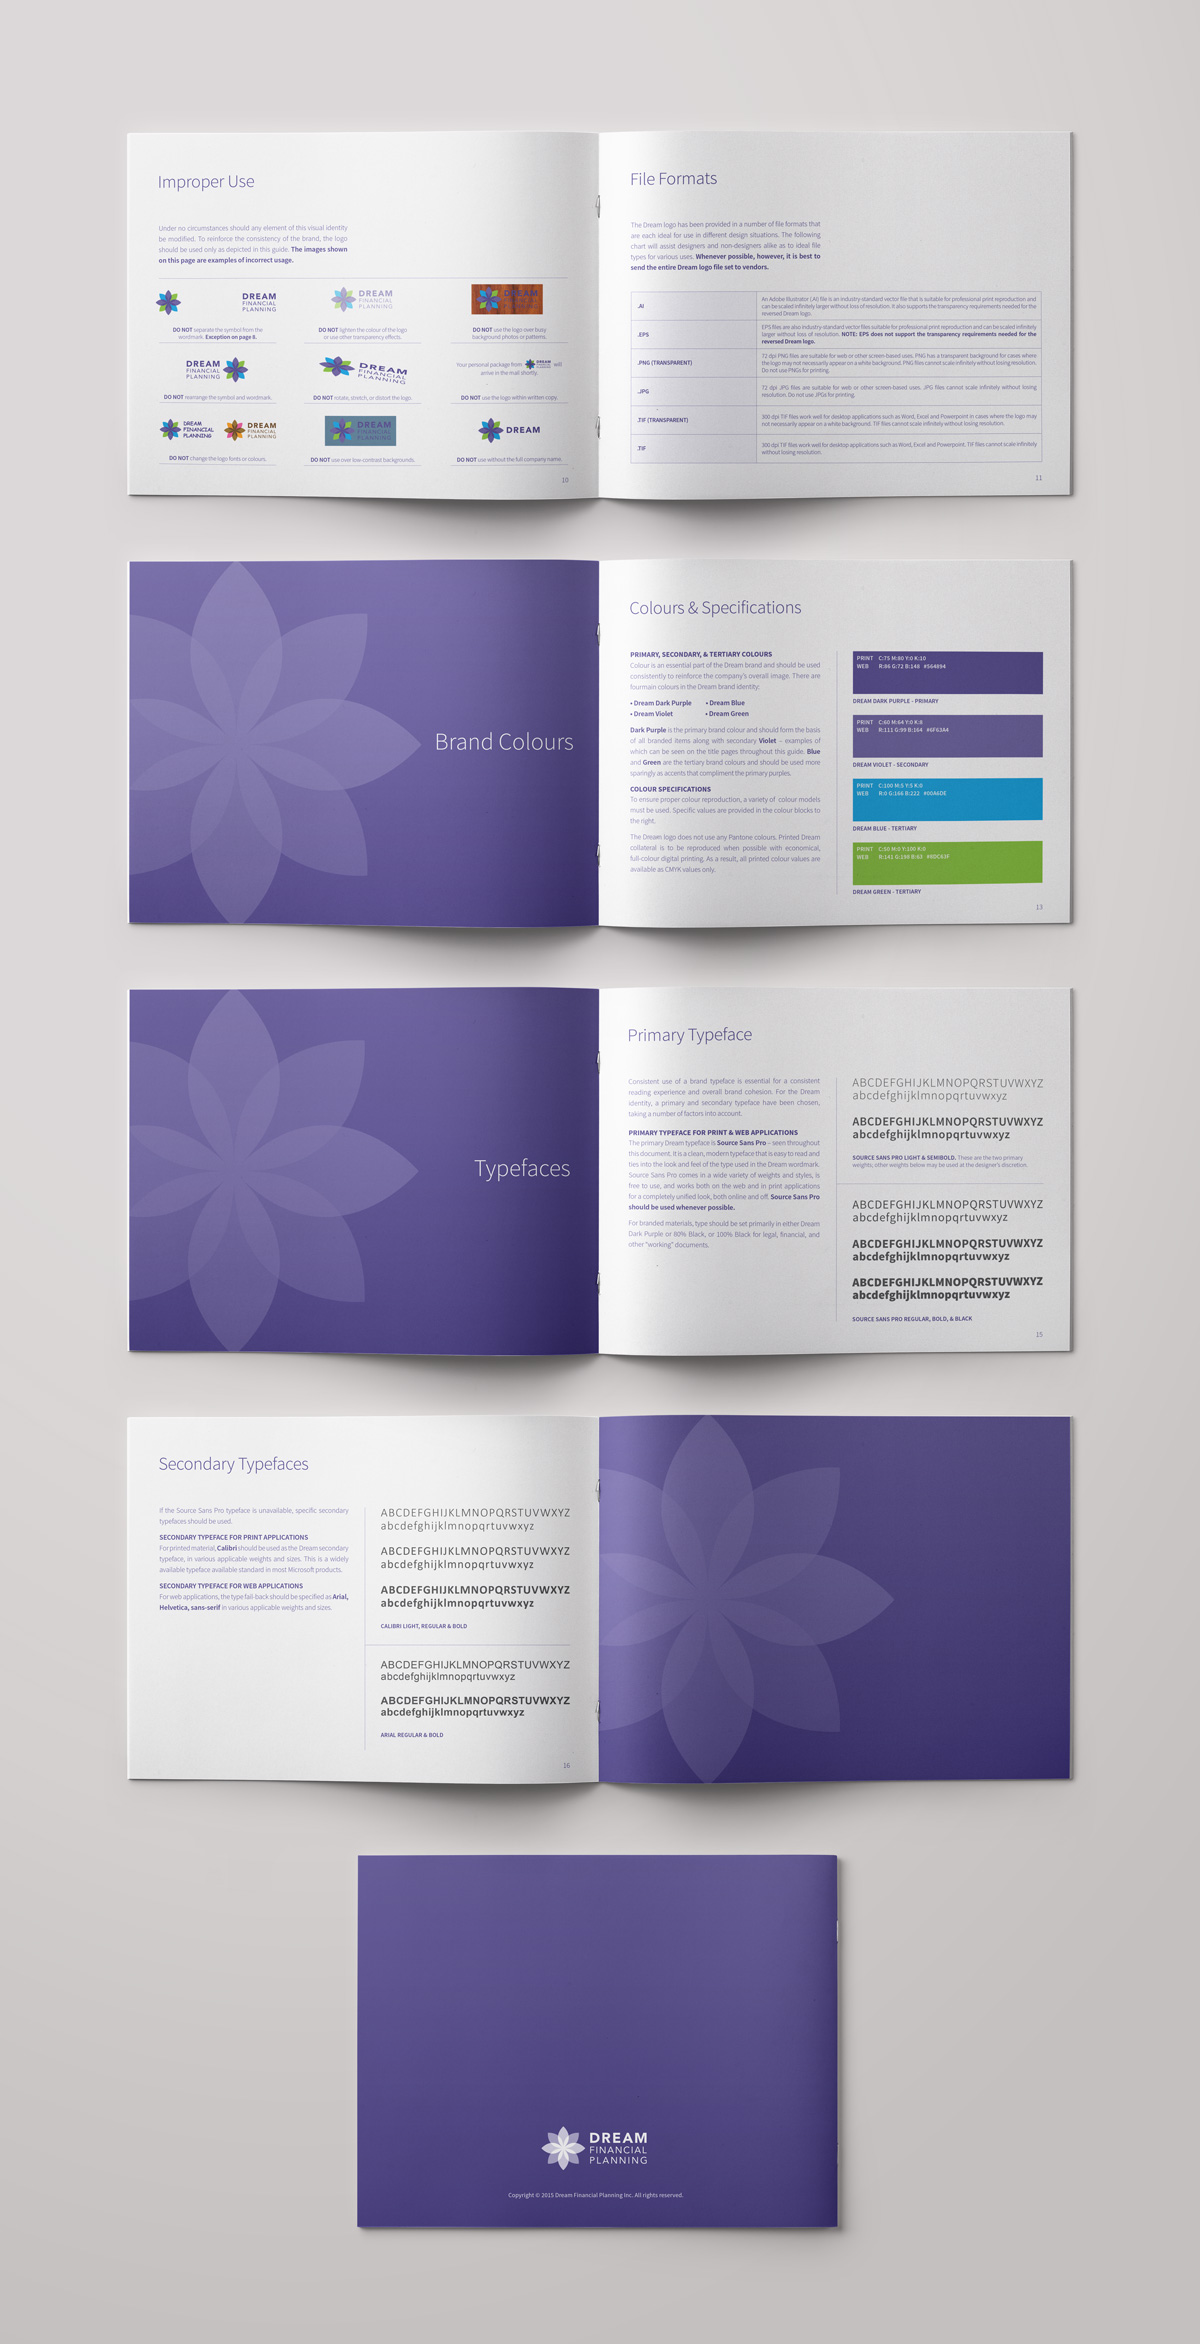 Dream Financial Planning – Visual Identity Guide Part 2